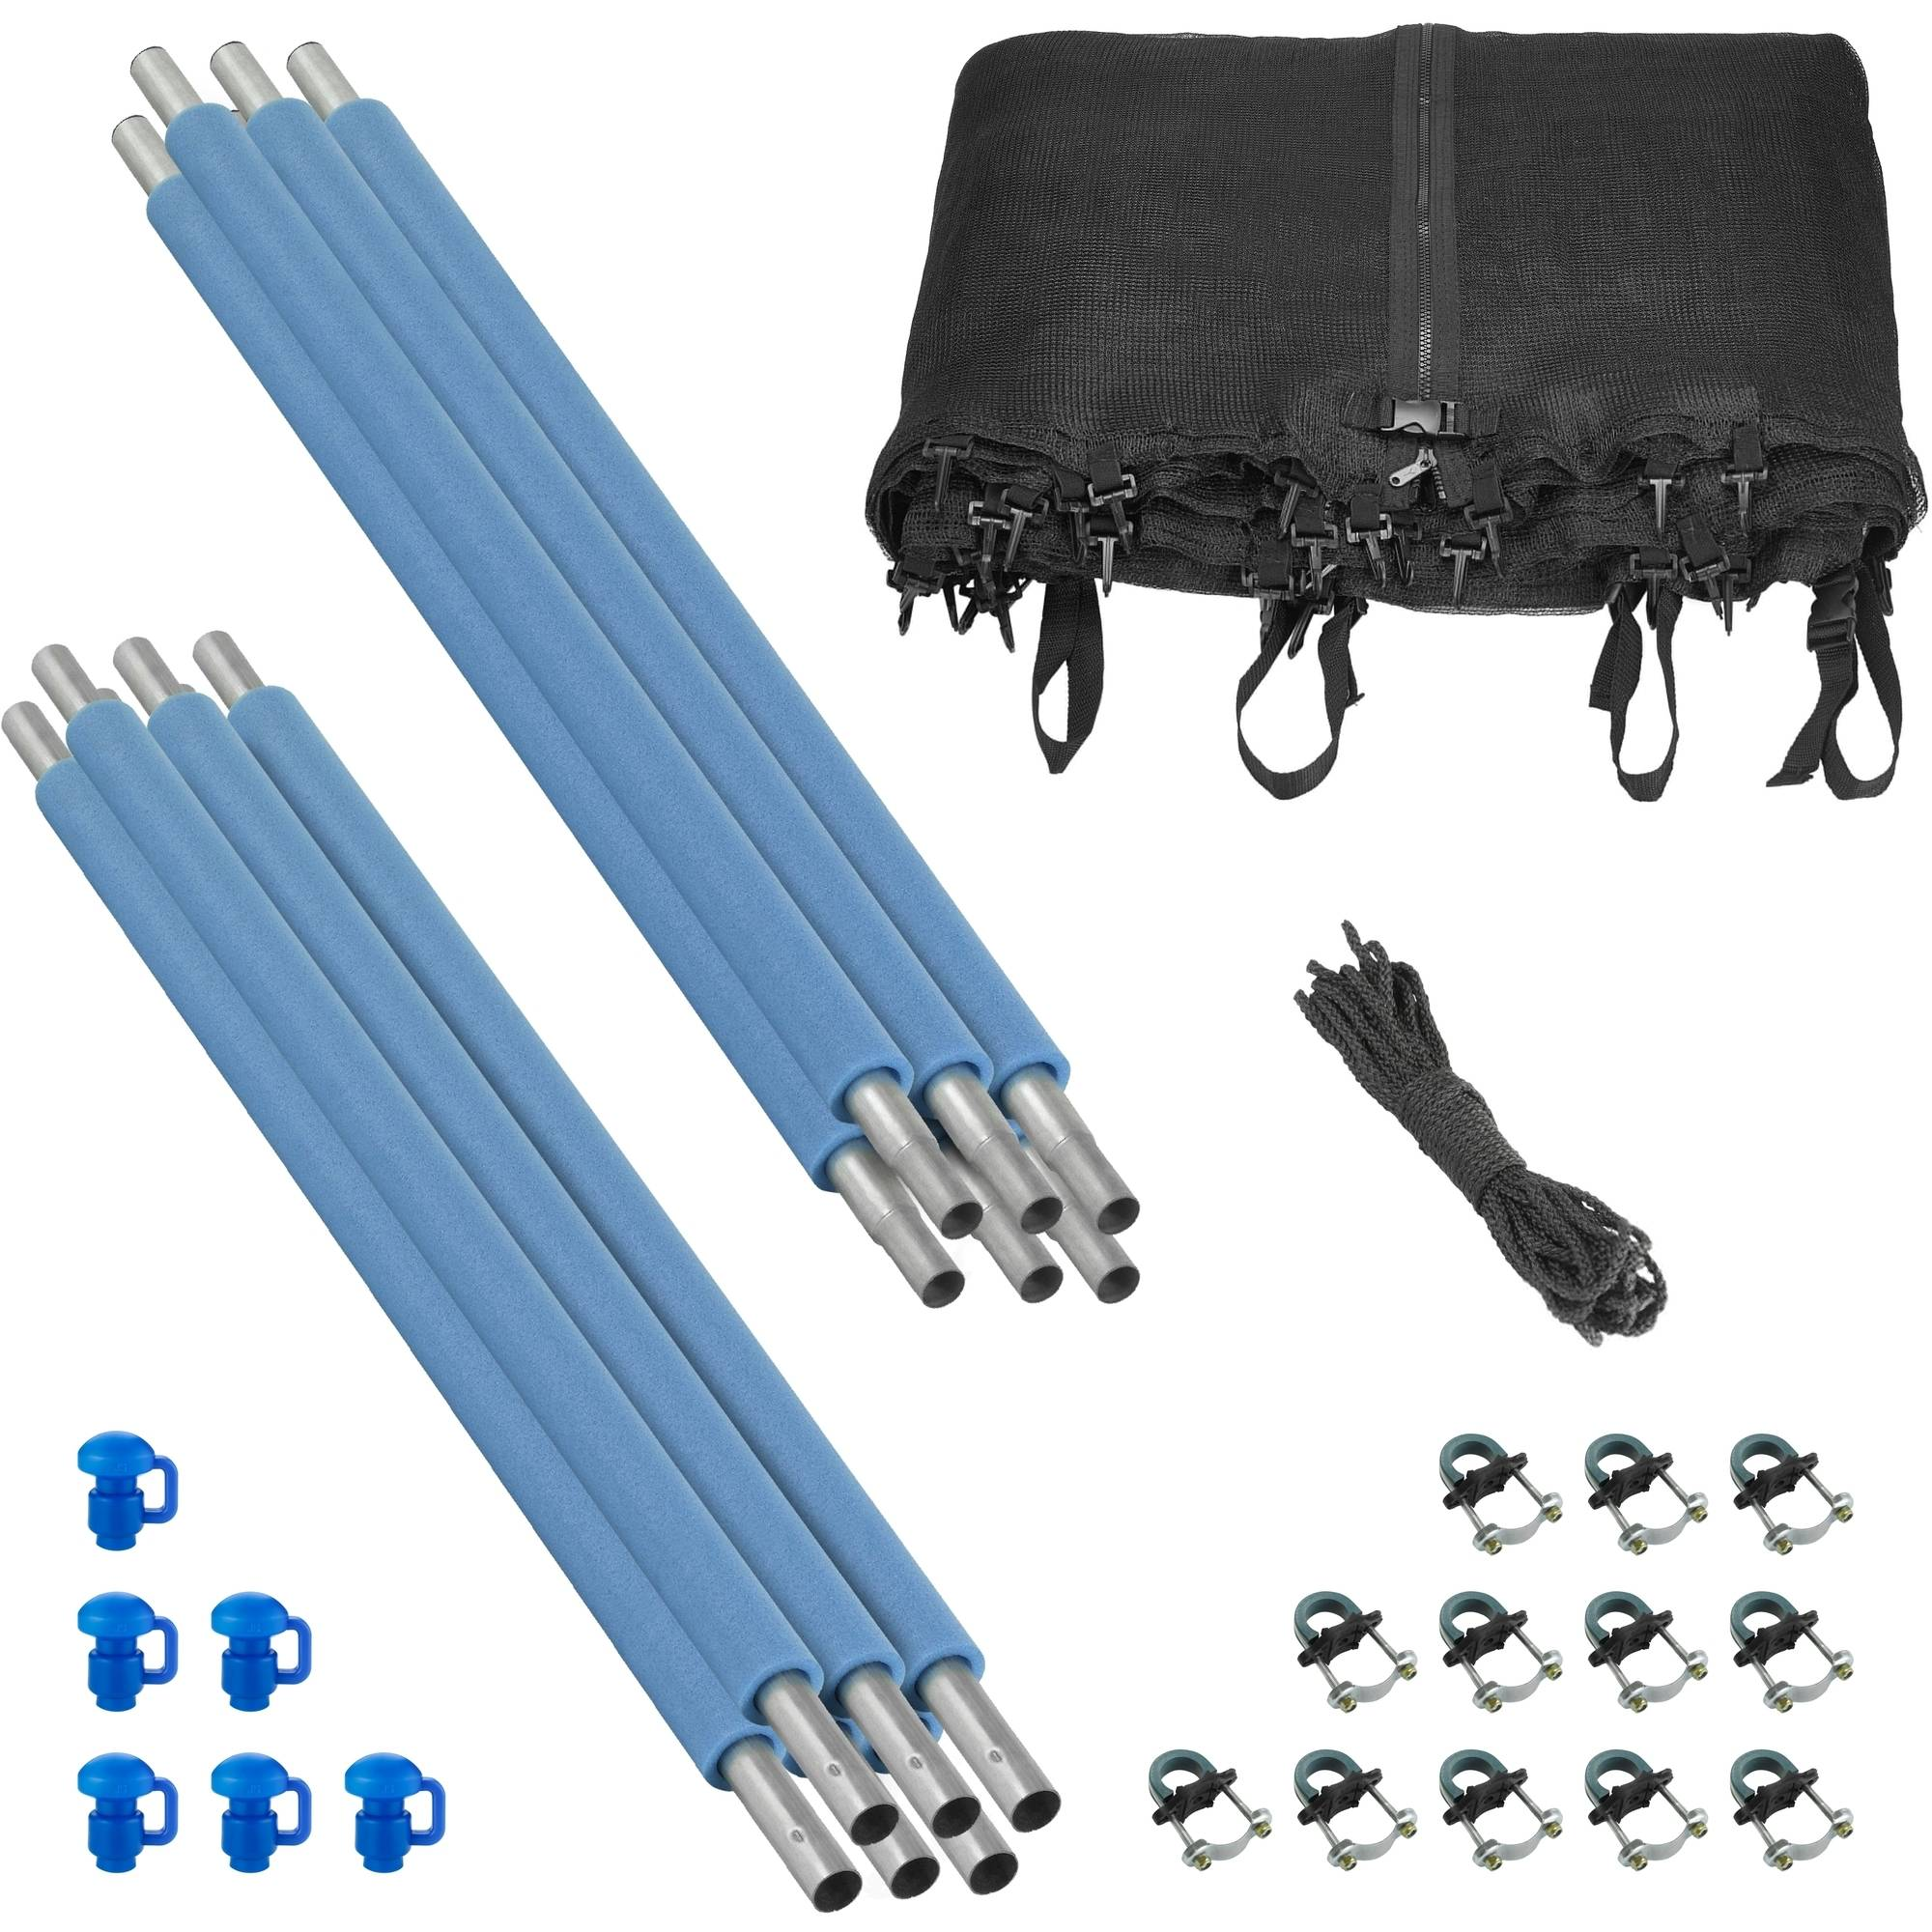 Trampoline Enclosure Set, Fits 16 FT. Round Frames, for 3 or 6 W-Shaped Legs -Set Includes: Net, Poles & Hardware Only